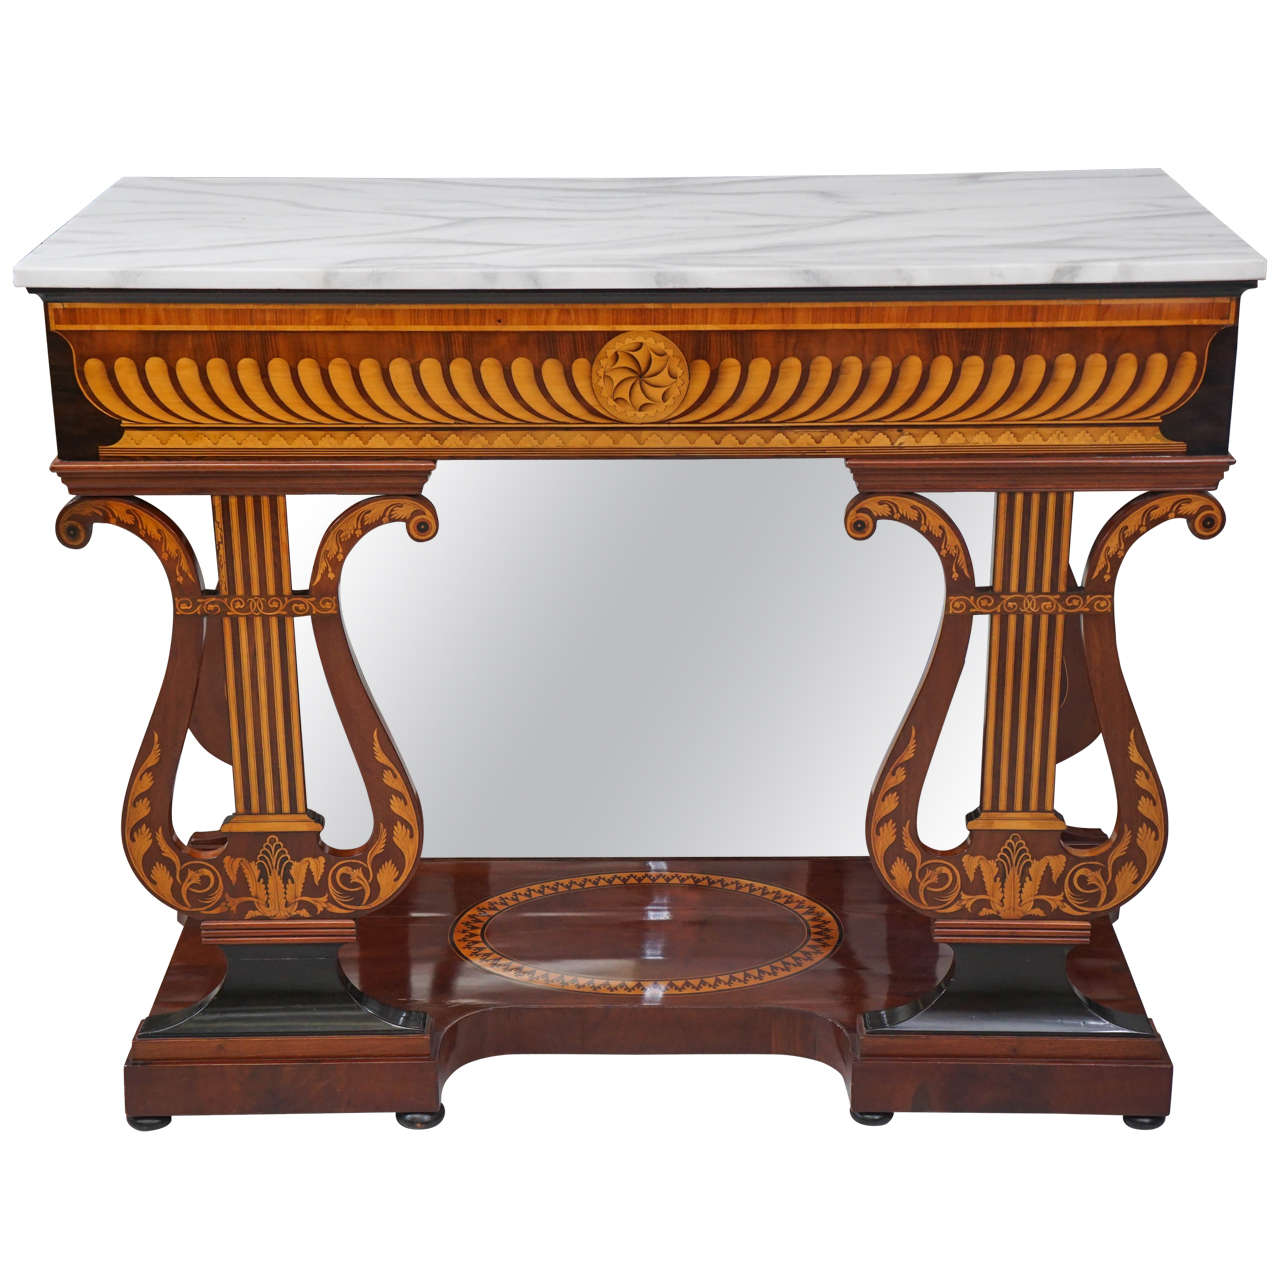 very fine austrian biedermeier marble topped console table for sale at 1stdibs. Black Bedroom Furniture Sets. Home Design Ideas